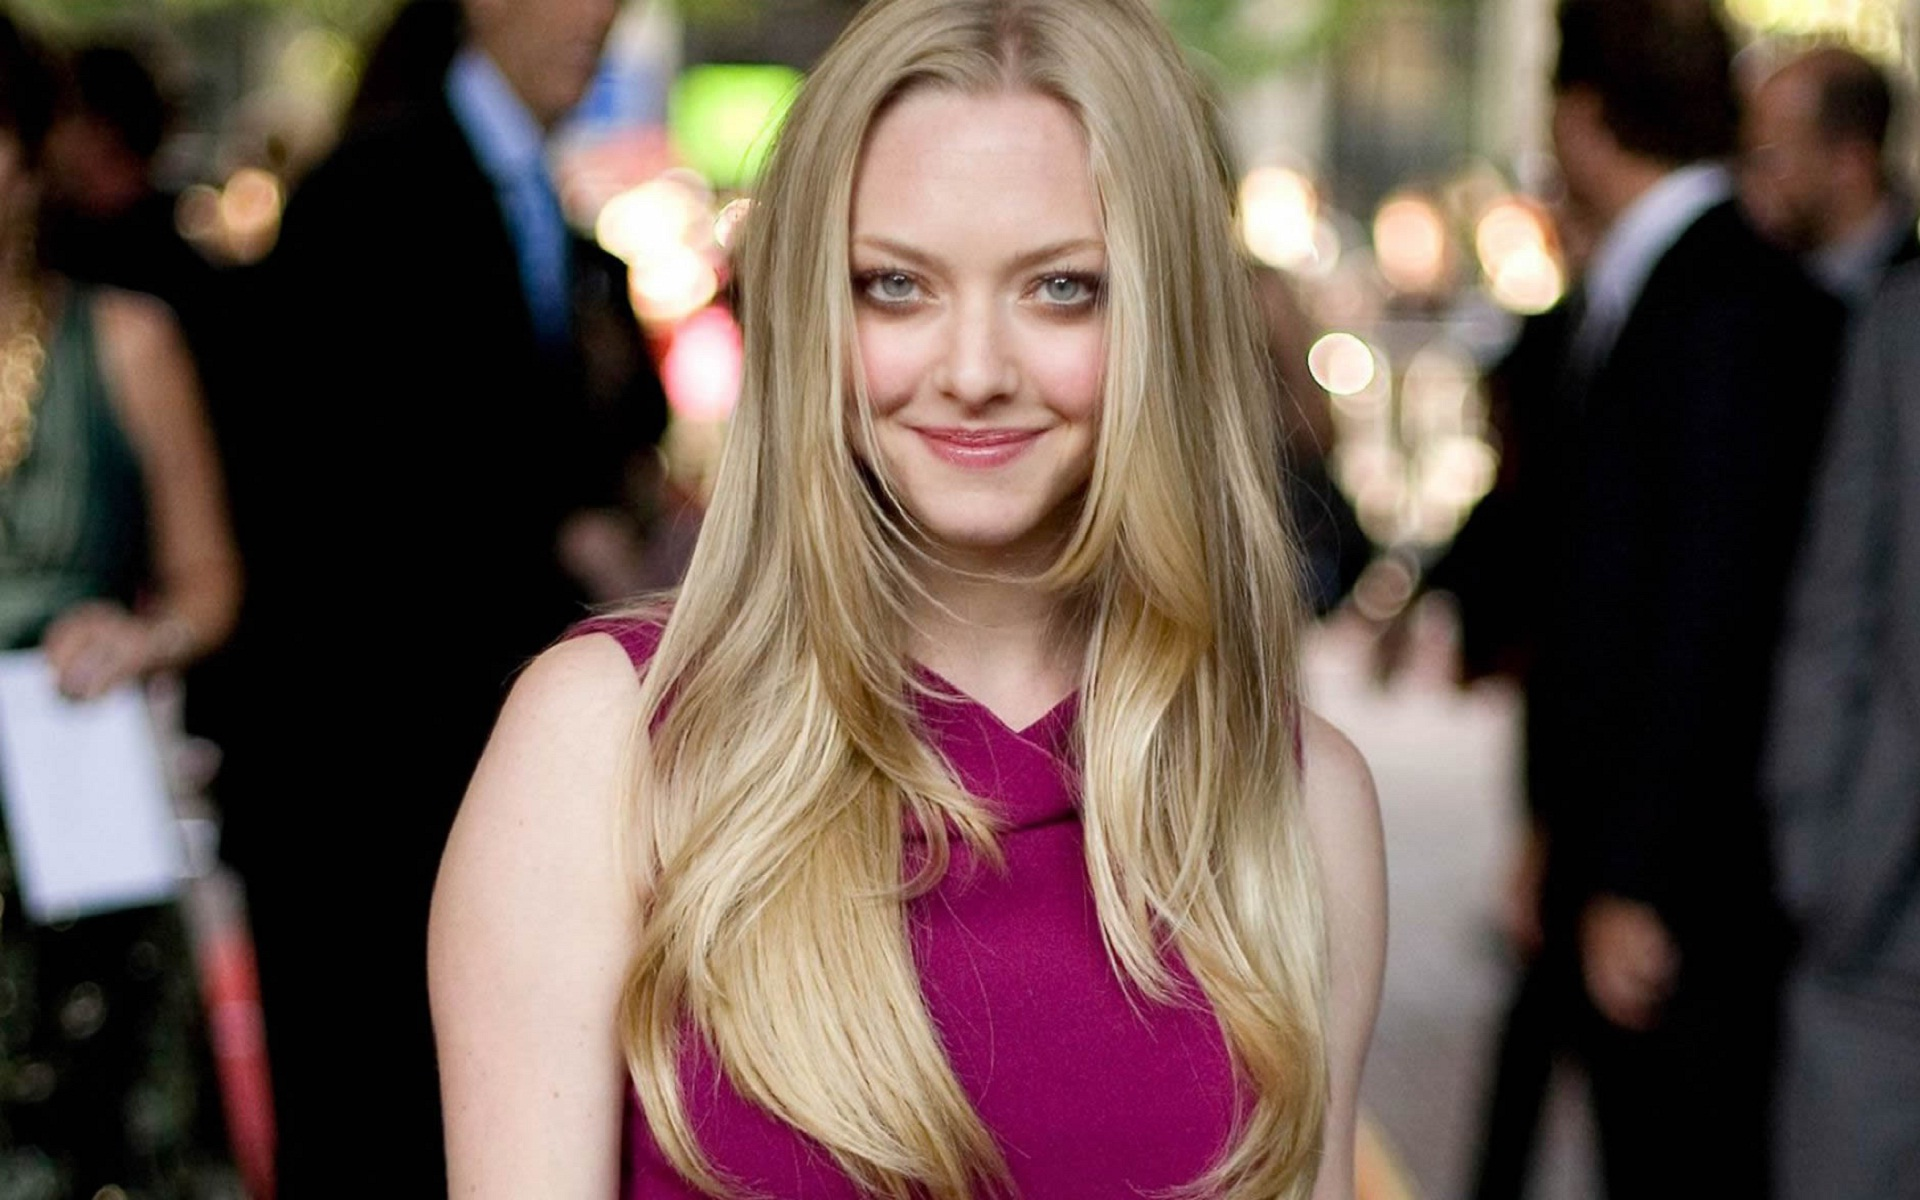 lovely amanda seyfried free mobile hd desktop background wallpaper